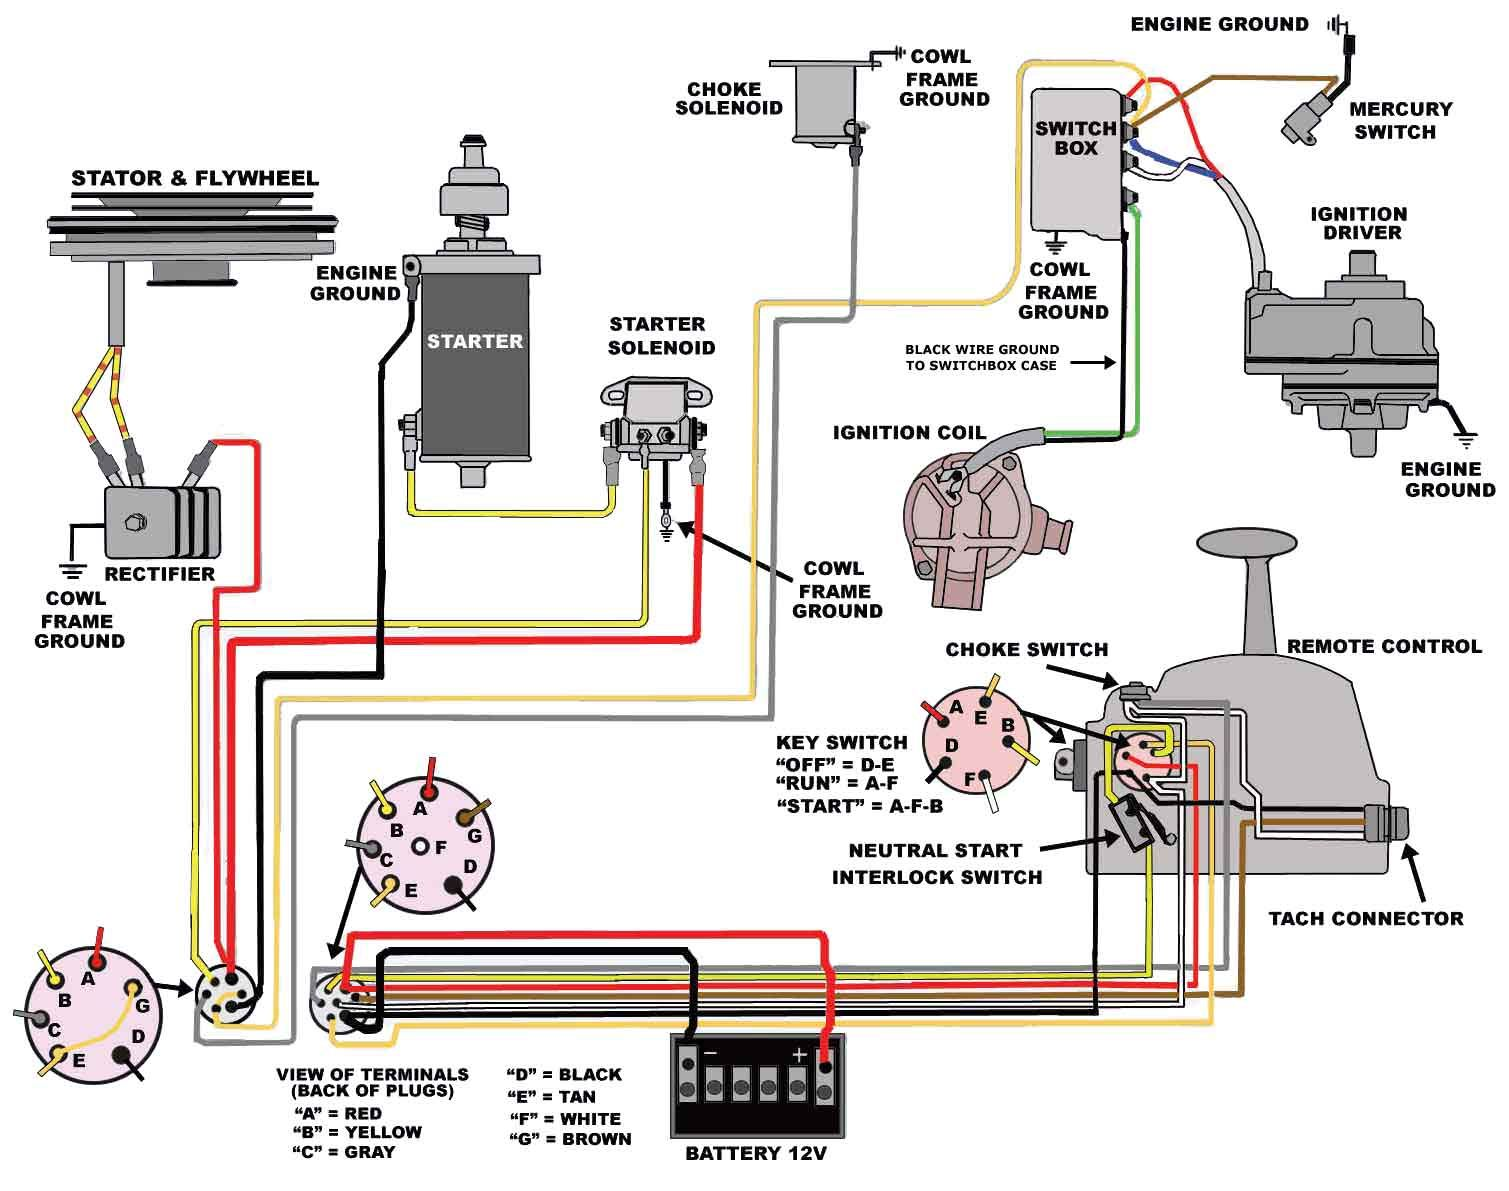 Old Mercs Wiring 1966 On Boat Wiring Mercury Outboard Electrical Diagram